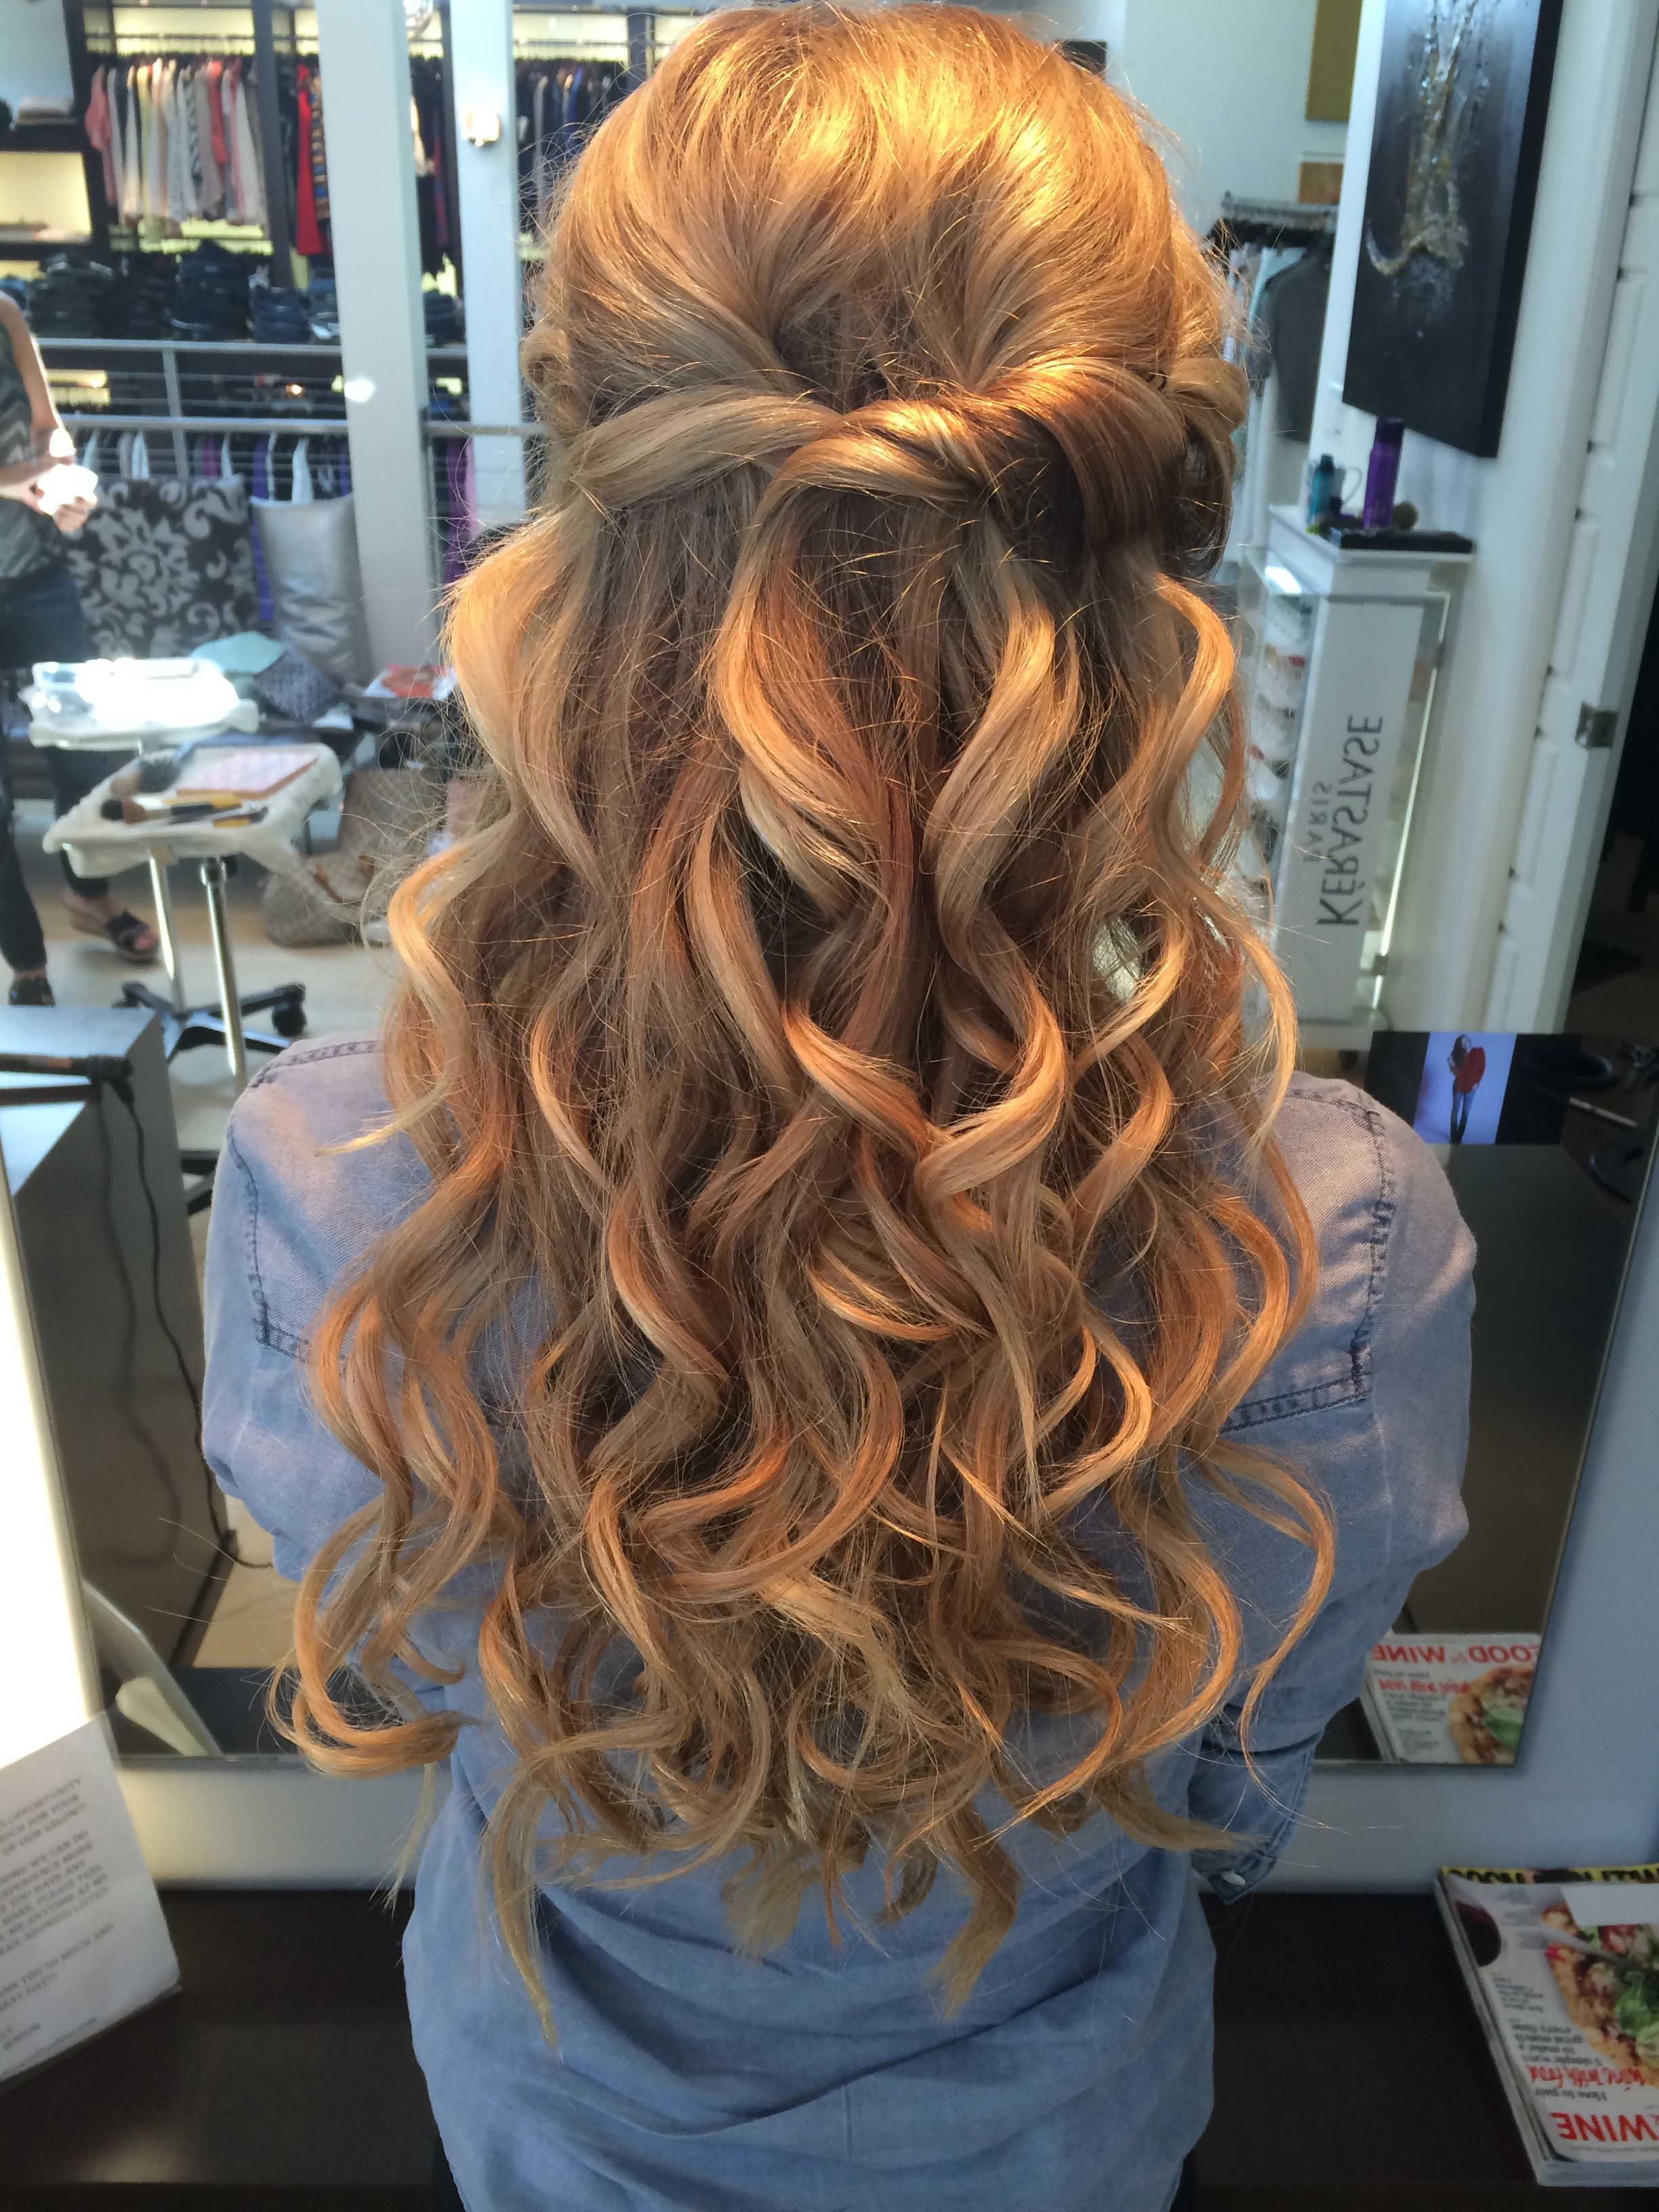 Prom half up/ half down hair Prom hairstyles for long